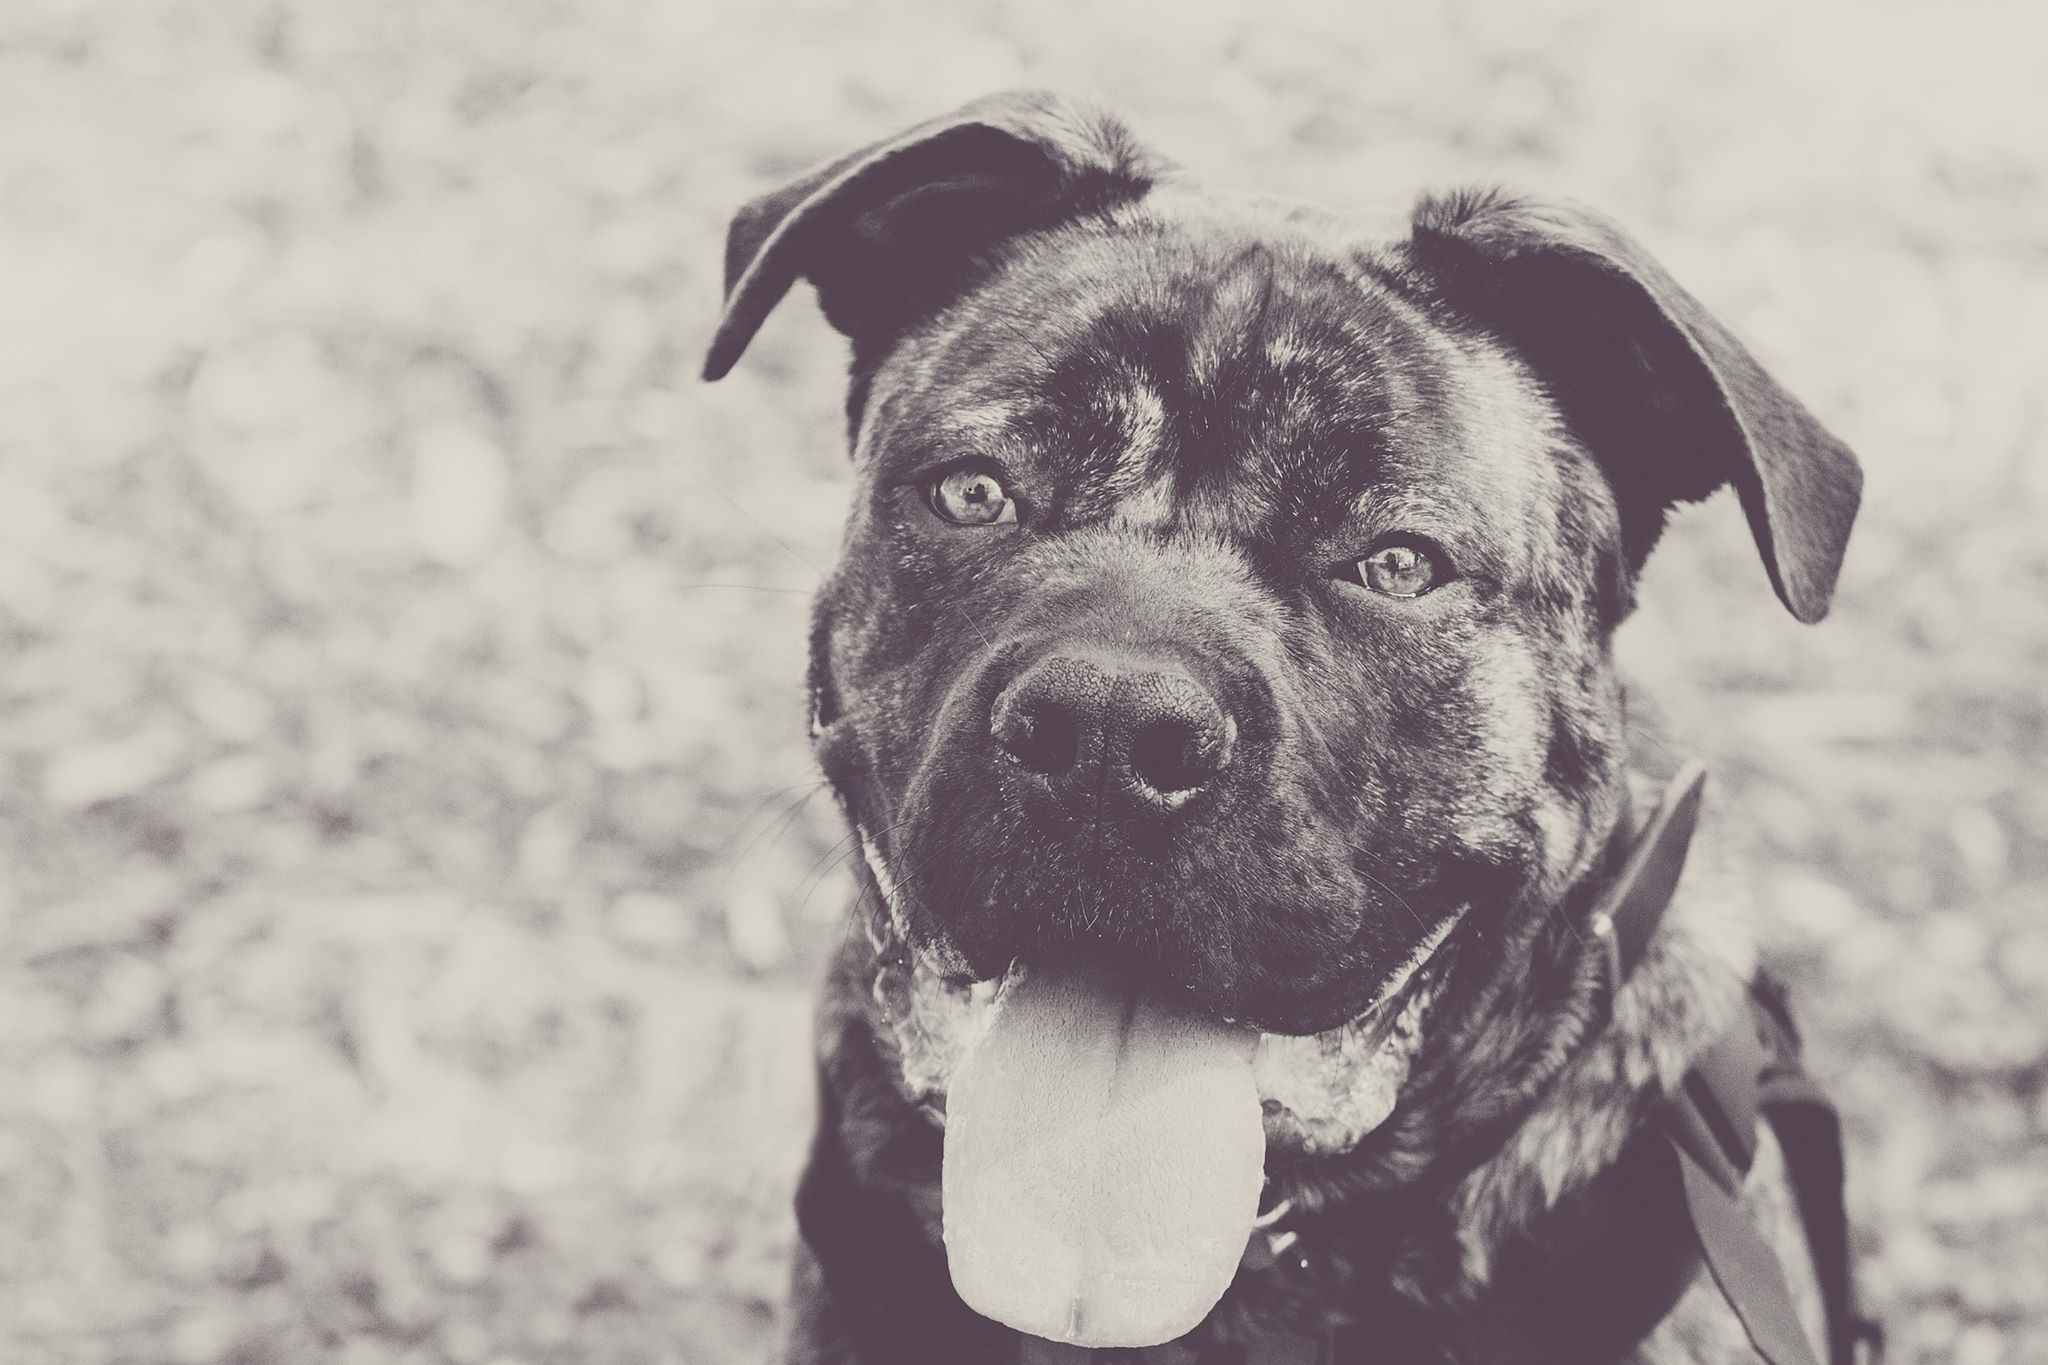 Dürriken - Dürriken is a confident Cane Corso with exceptional aptitude. His work ethic to-date promises a bright future. He's loving, gentle and a goofy character who warms the hearts of many, especially his handler. Dürriken is being trained for mental health service, medical alert, and light mobility.